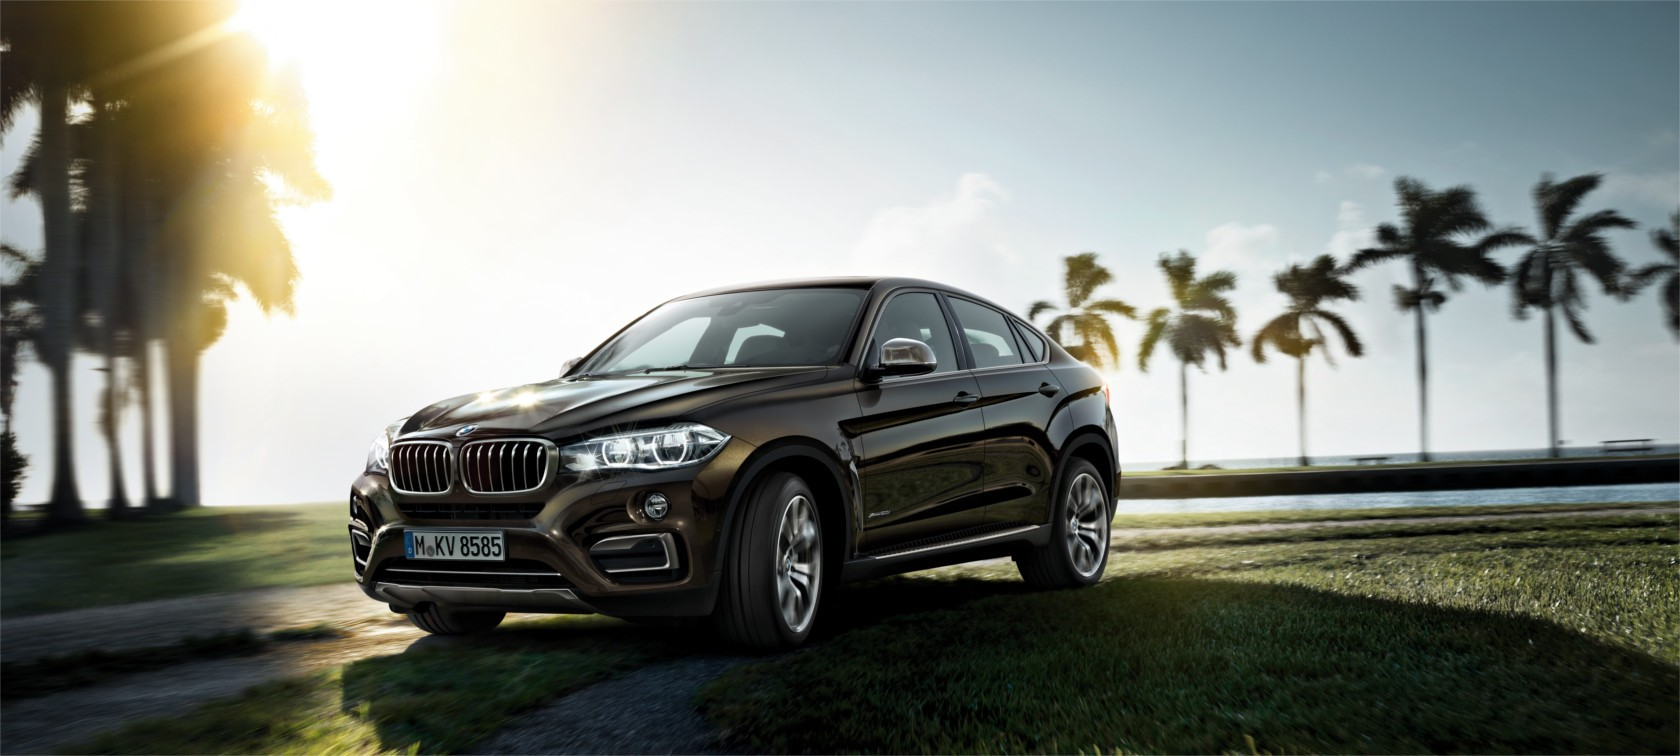 2016 BMW X6 Series in Richmond, BC at Auto West BMW